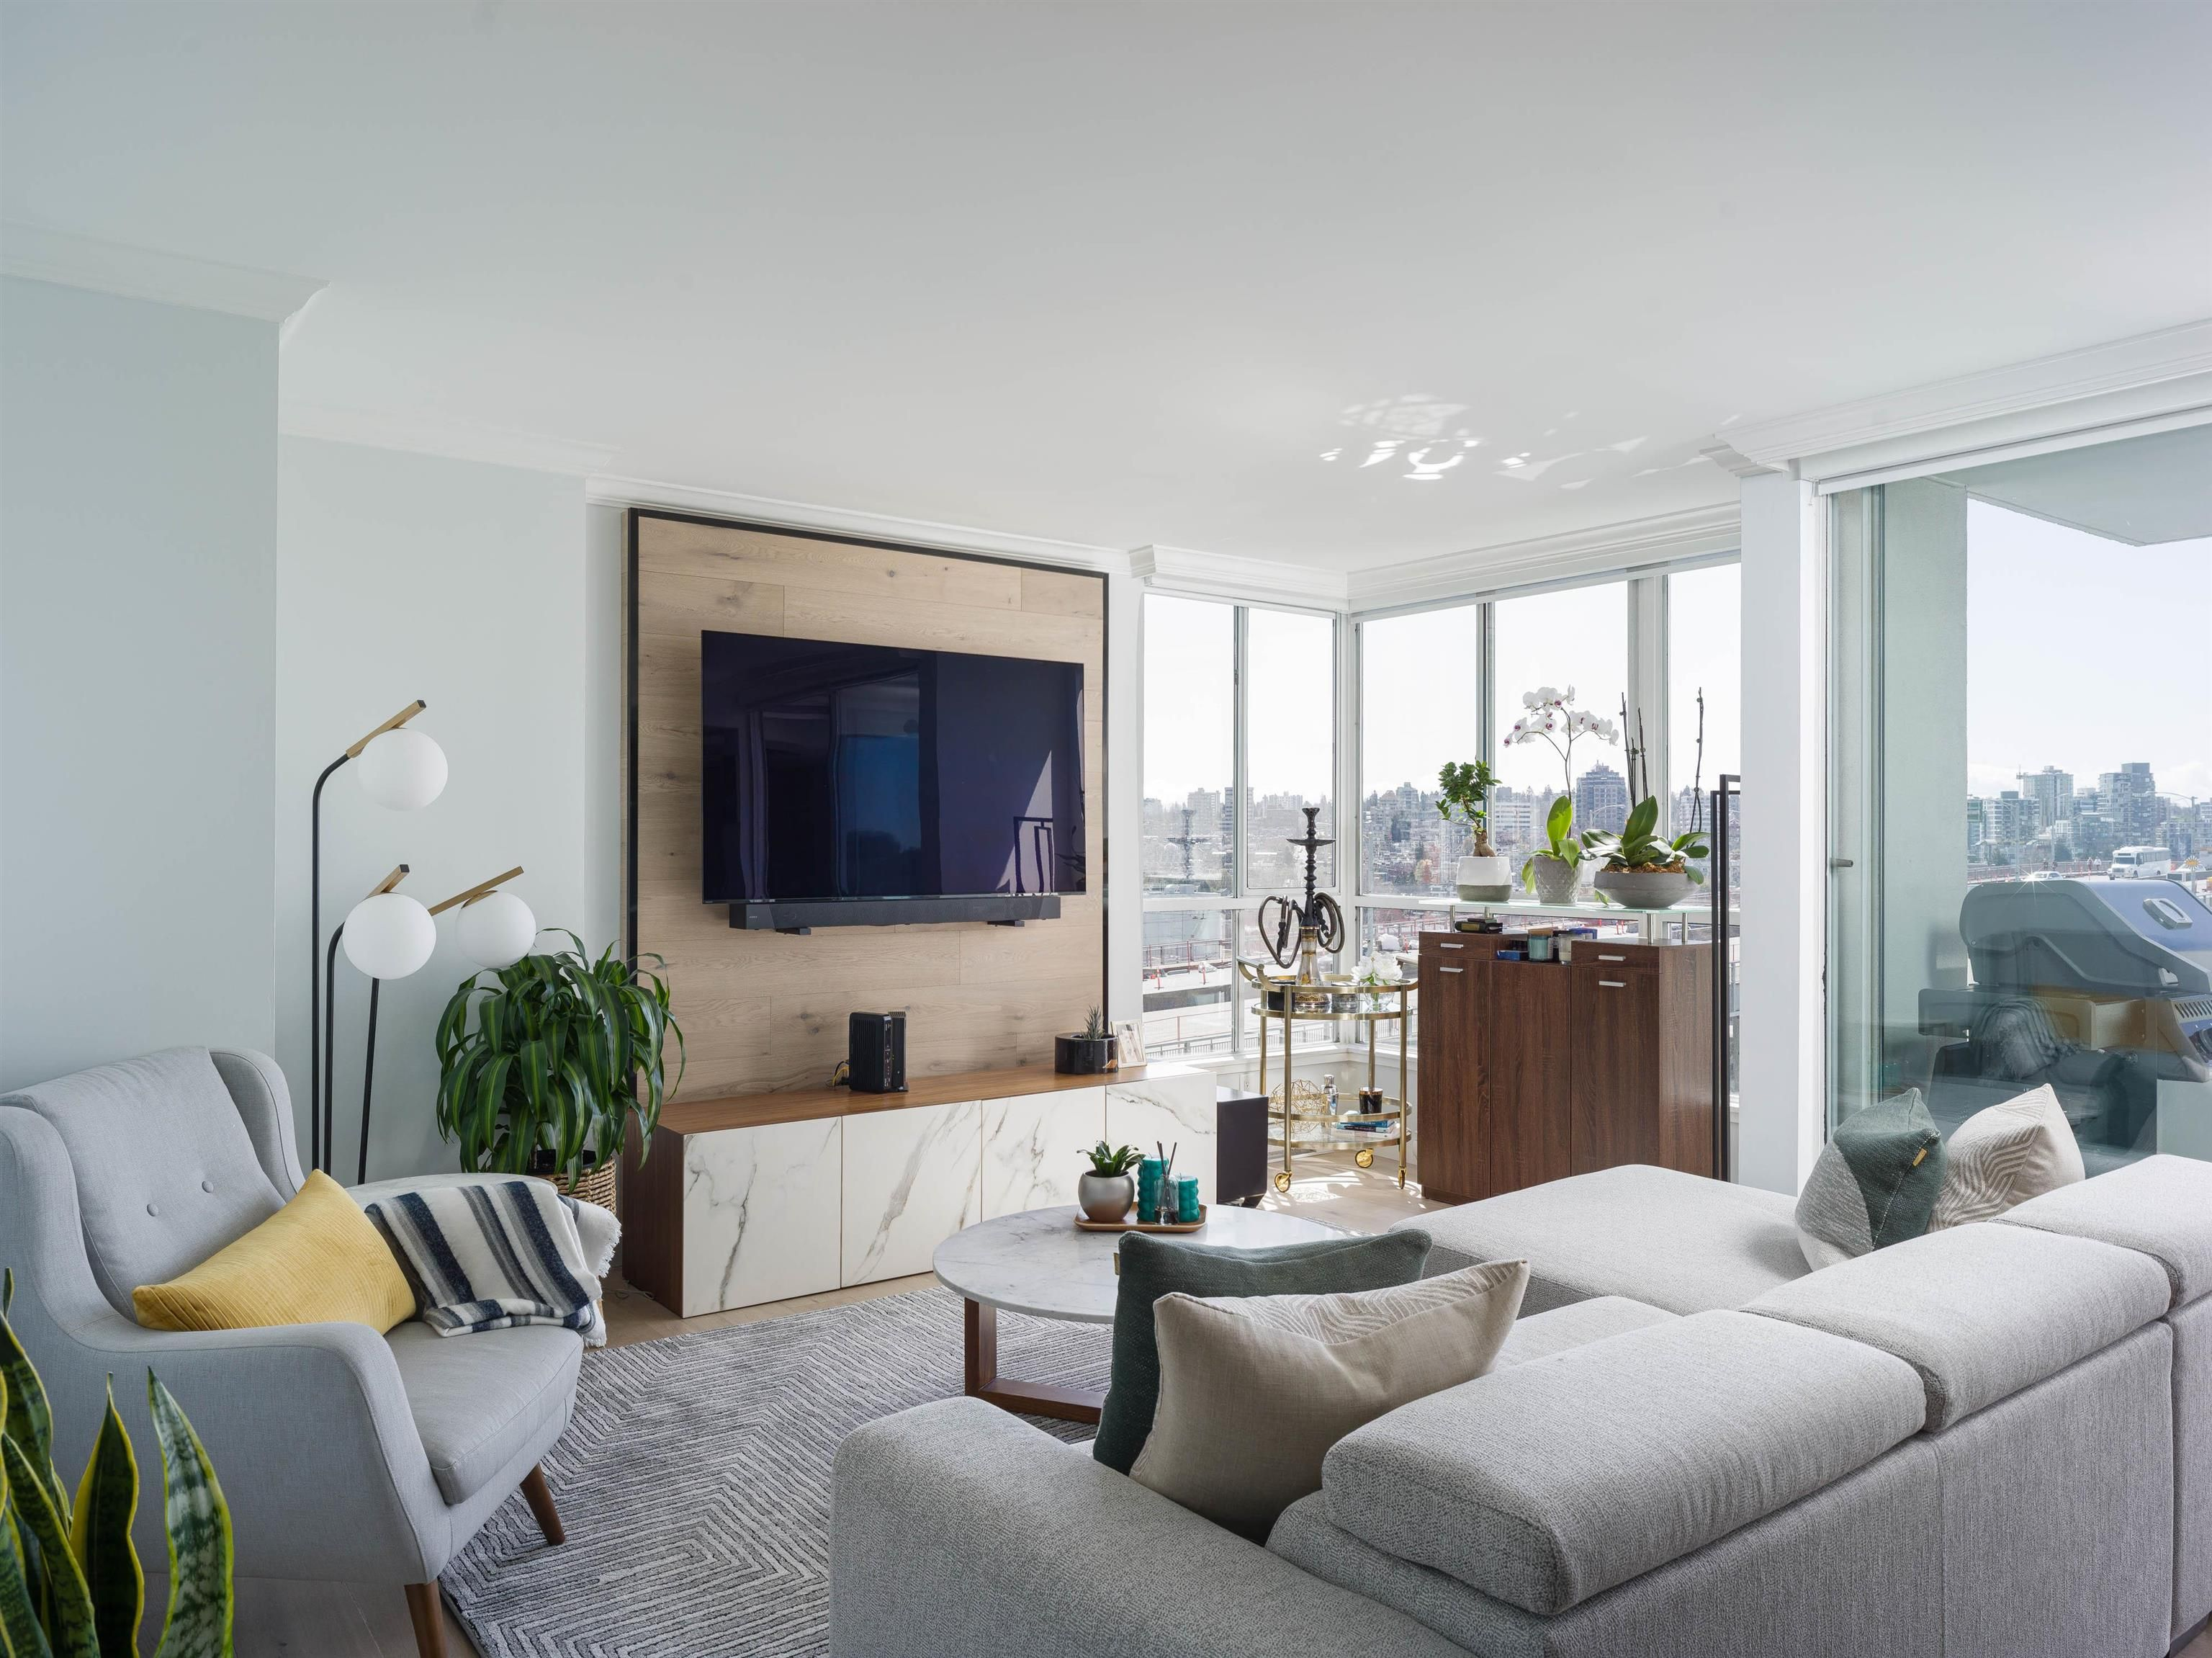 Main Photo: 1507 1500 HOWE STREET in Vancouver: Yaletown Condo for sale (Vancouver West)  : MLS®# R2623287